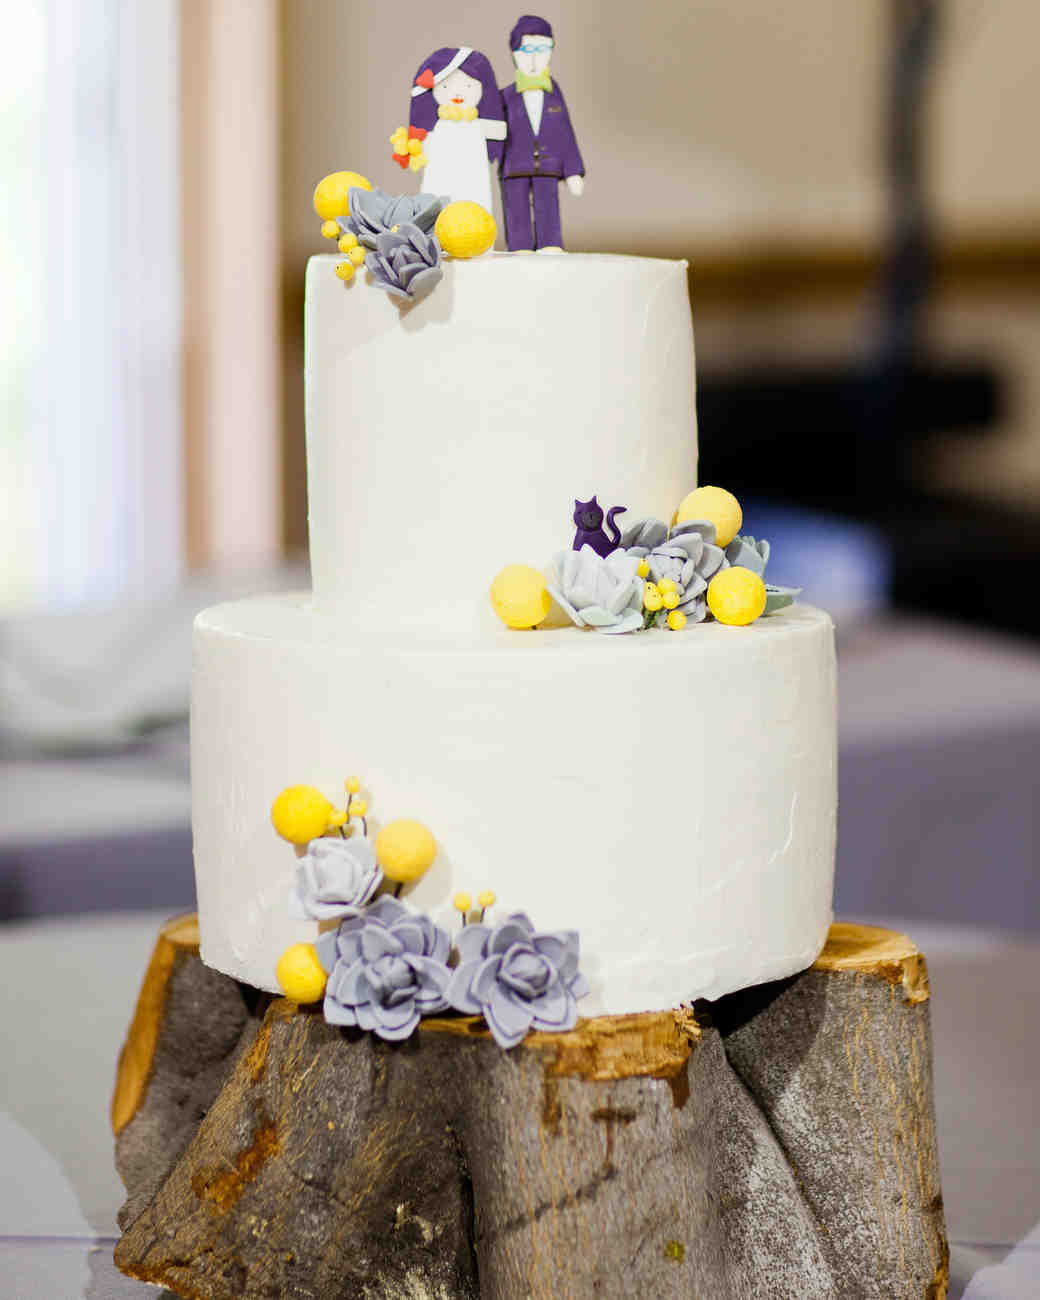 Two-Tiered White Wedding Cake with Purple and Yellow Candy Topper and Accents